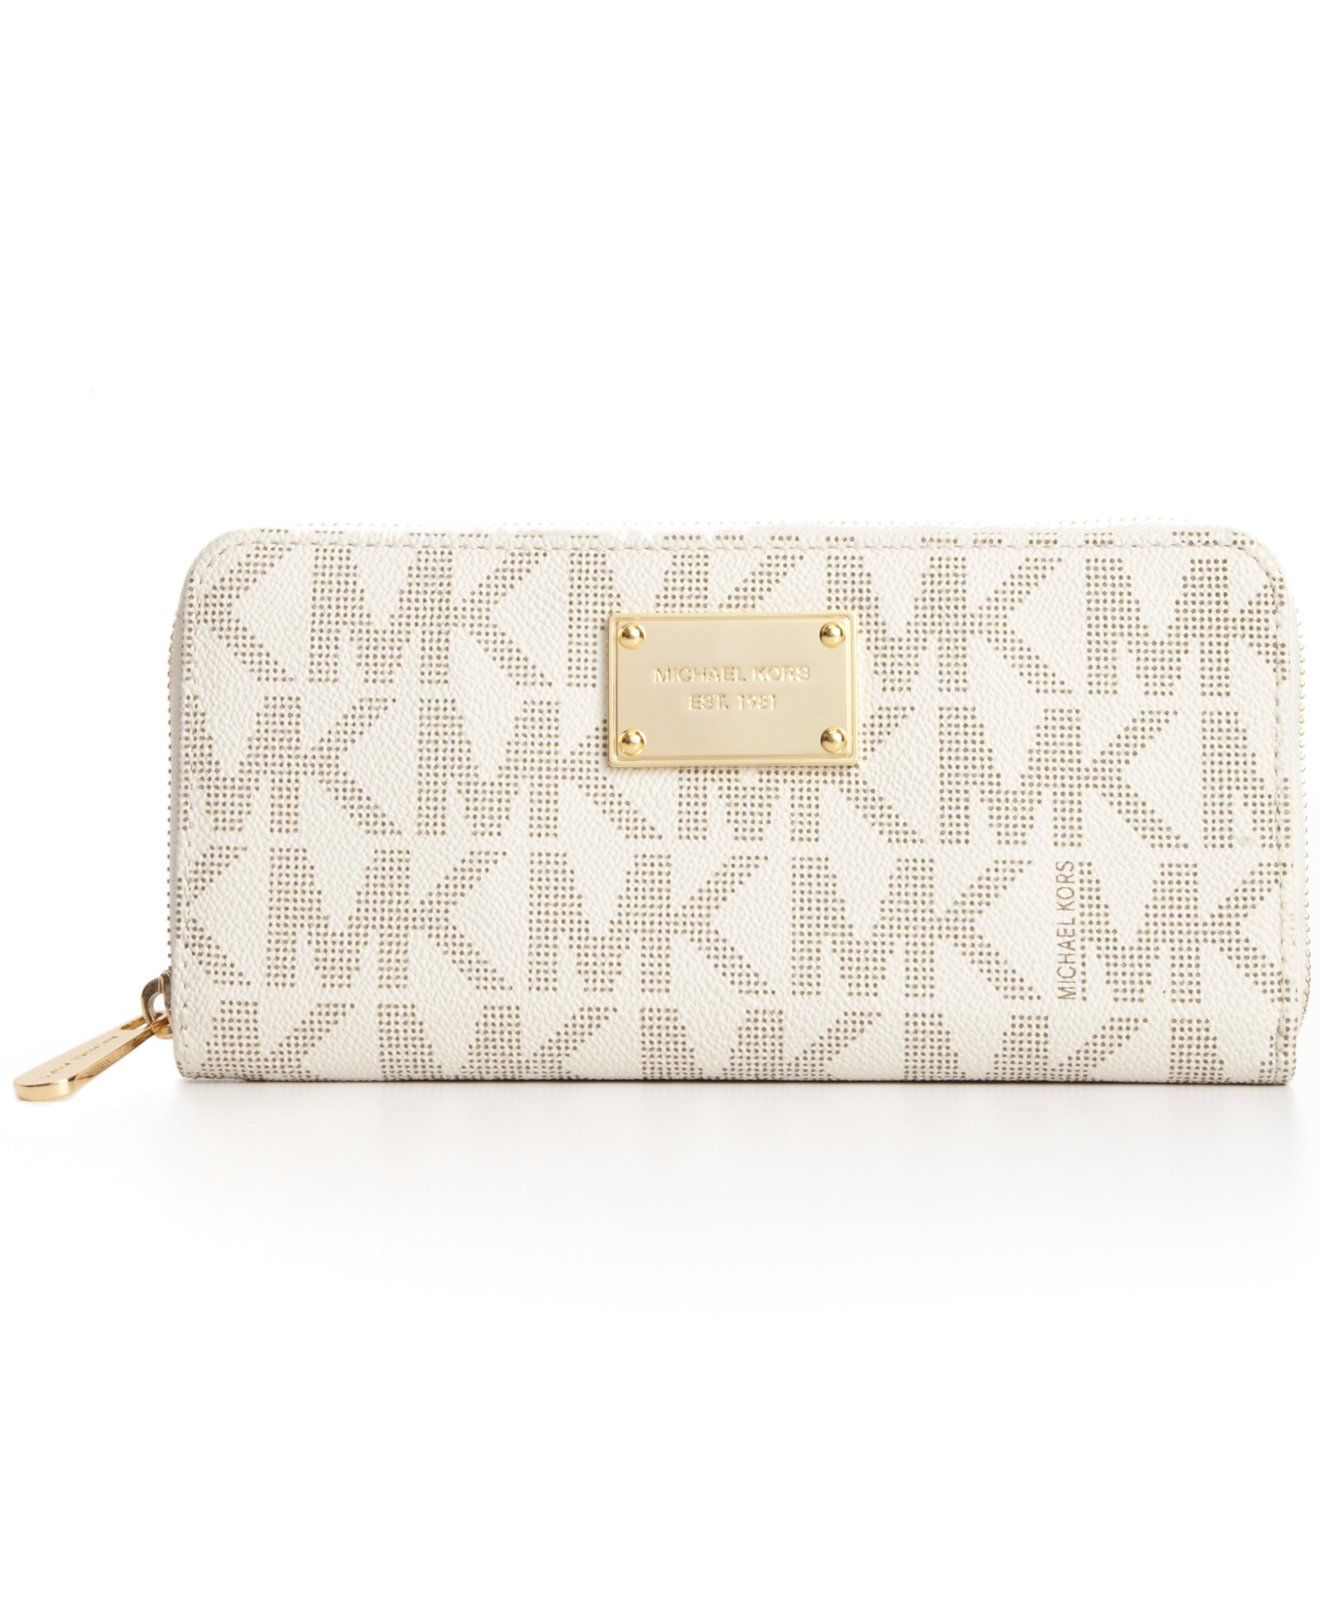 9f3a8547997fb2 MICHAEL Michael Kors MK Logo Zip Around Continental Wallet - Wallets &  Wristlets - Handbags & Accessories - Macy's